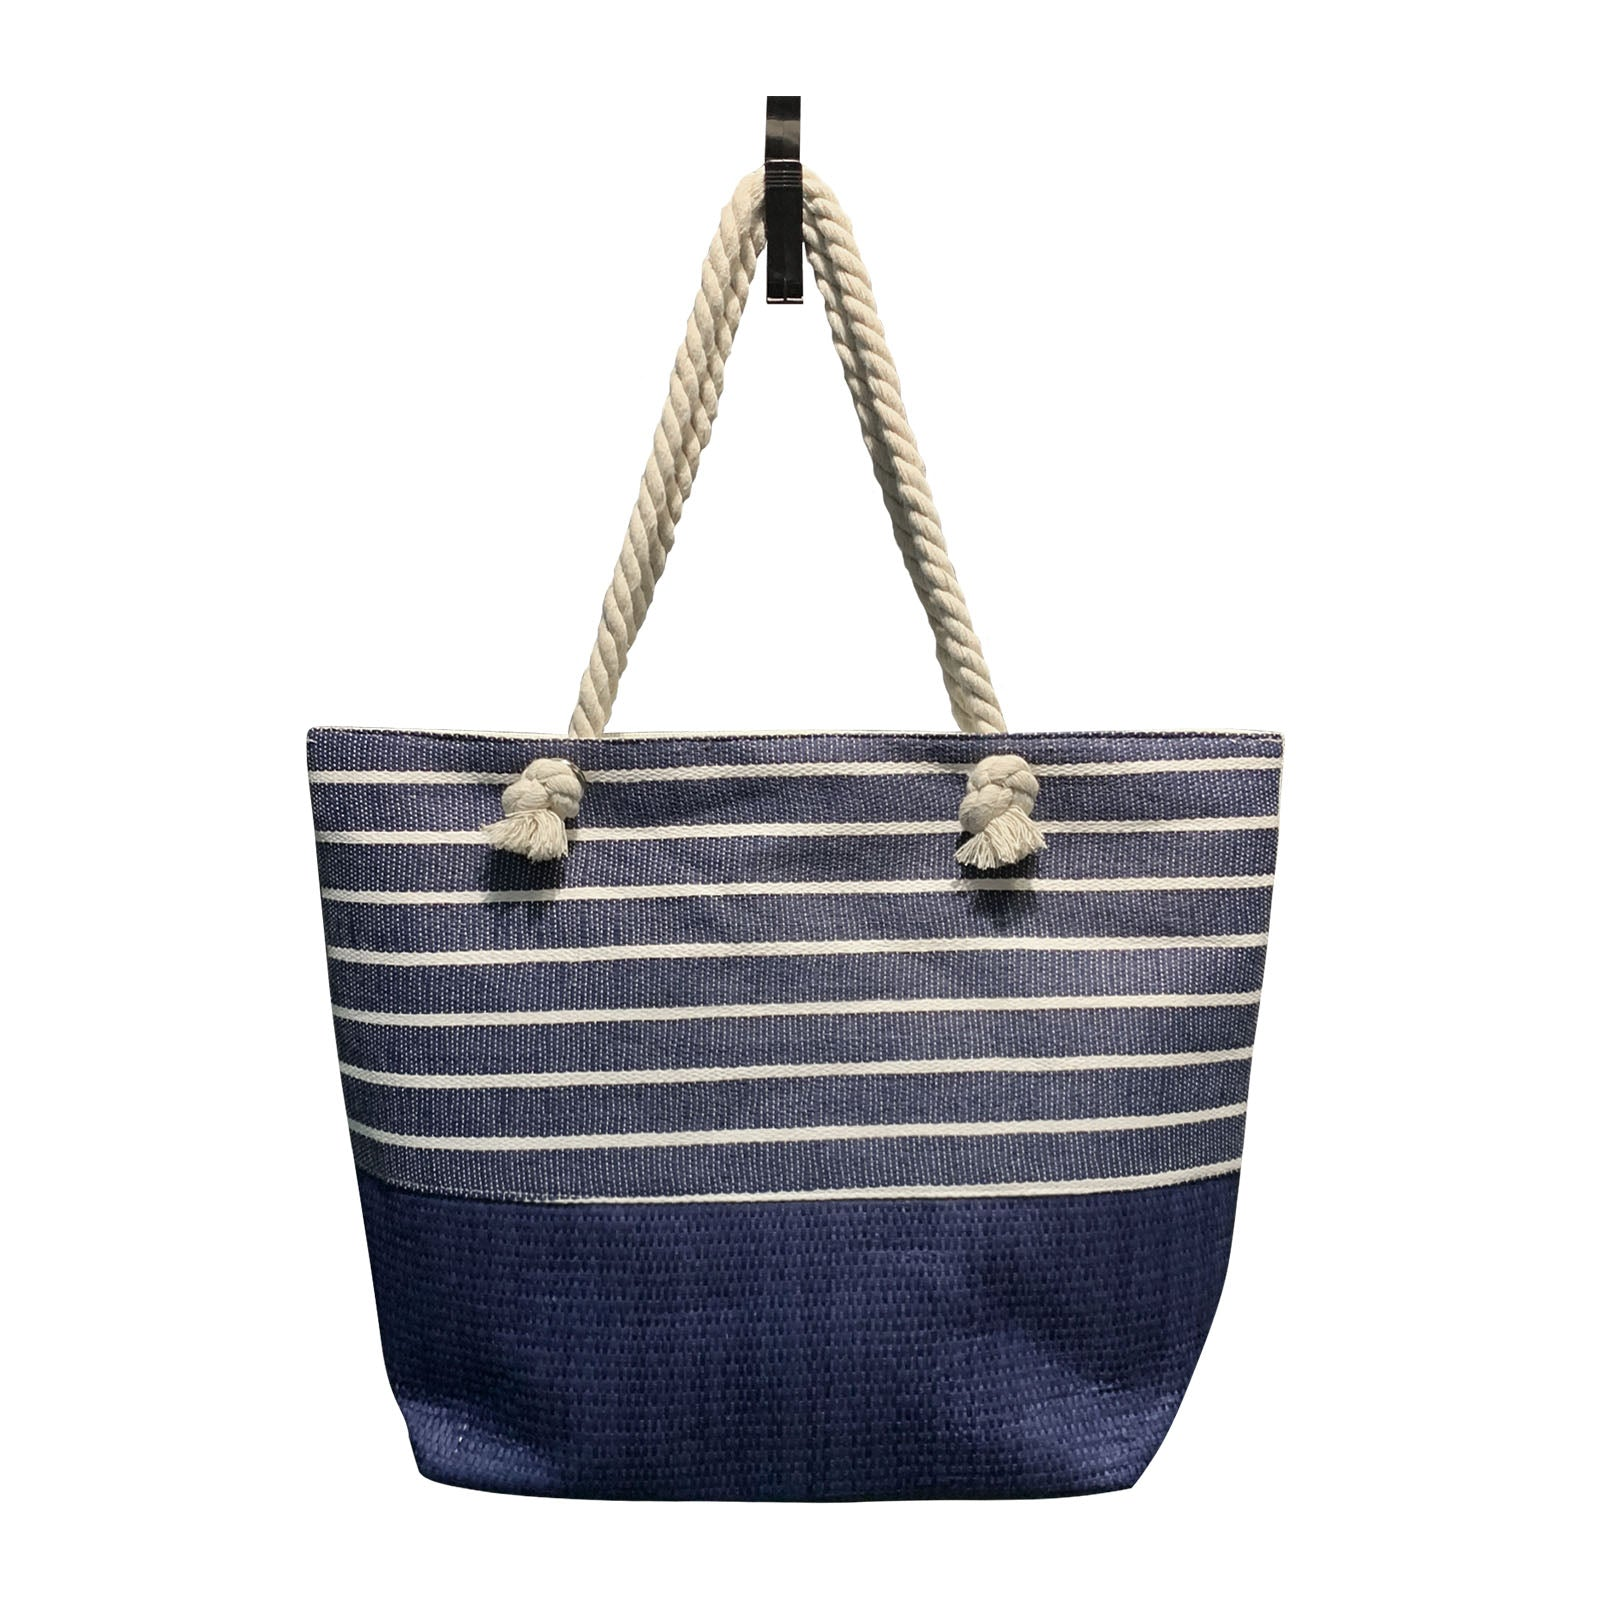 Handmade Bag/ Basket 190406-002 -  حقيبة / سلة يدوية - Shop Online Furniture and Home Decor Store in Dubai, UAE at ebarza